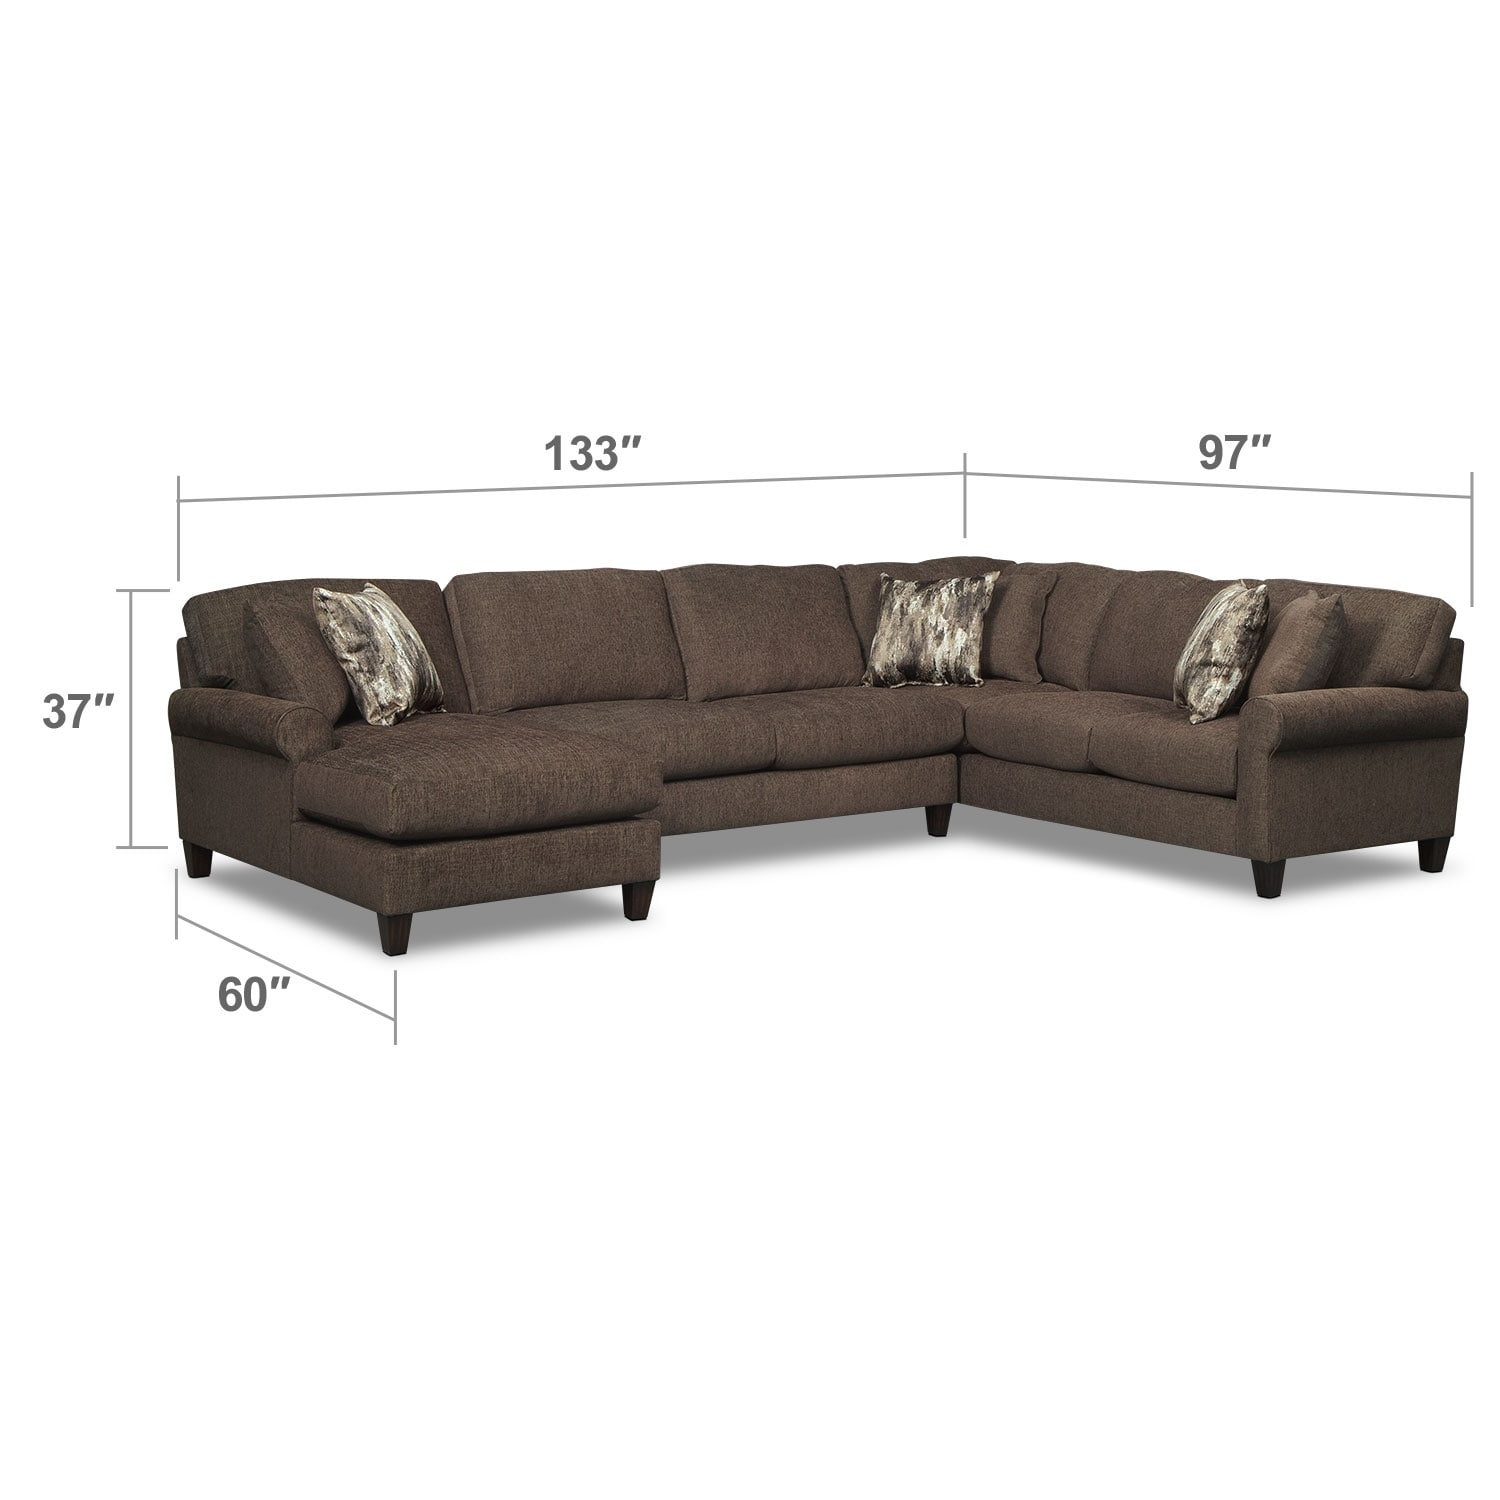 Living Room Furniture - Karma 3-Piece Left-Facing Sectional - Smoke